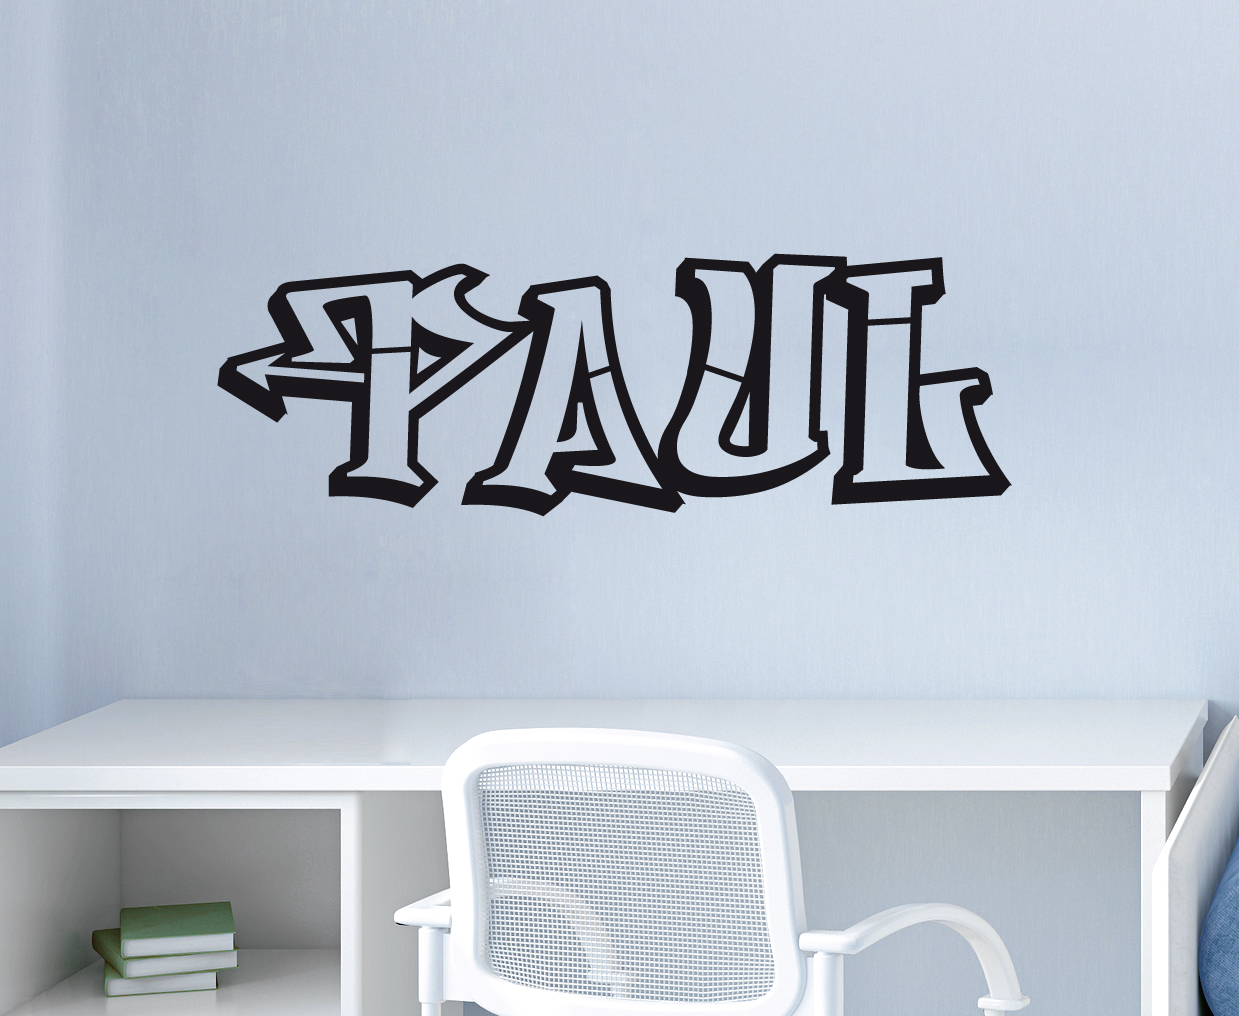 Home Decor Graffiti Name Hiphop Schrift Modern Aufkleber Rap Style Wandaufkleber Wandtattoo Home Garden Mbln Org